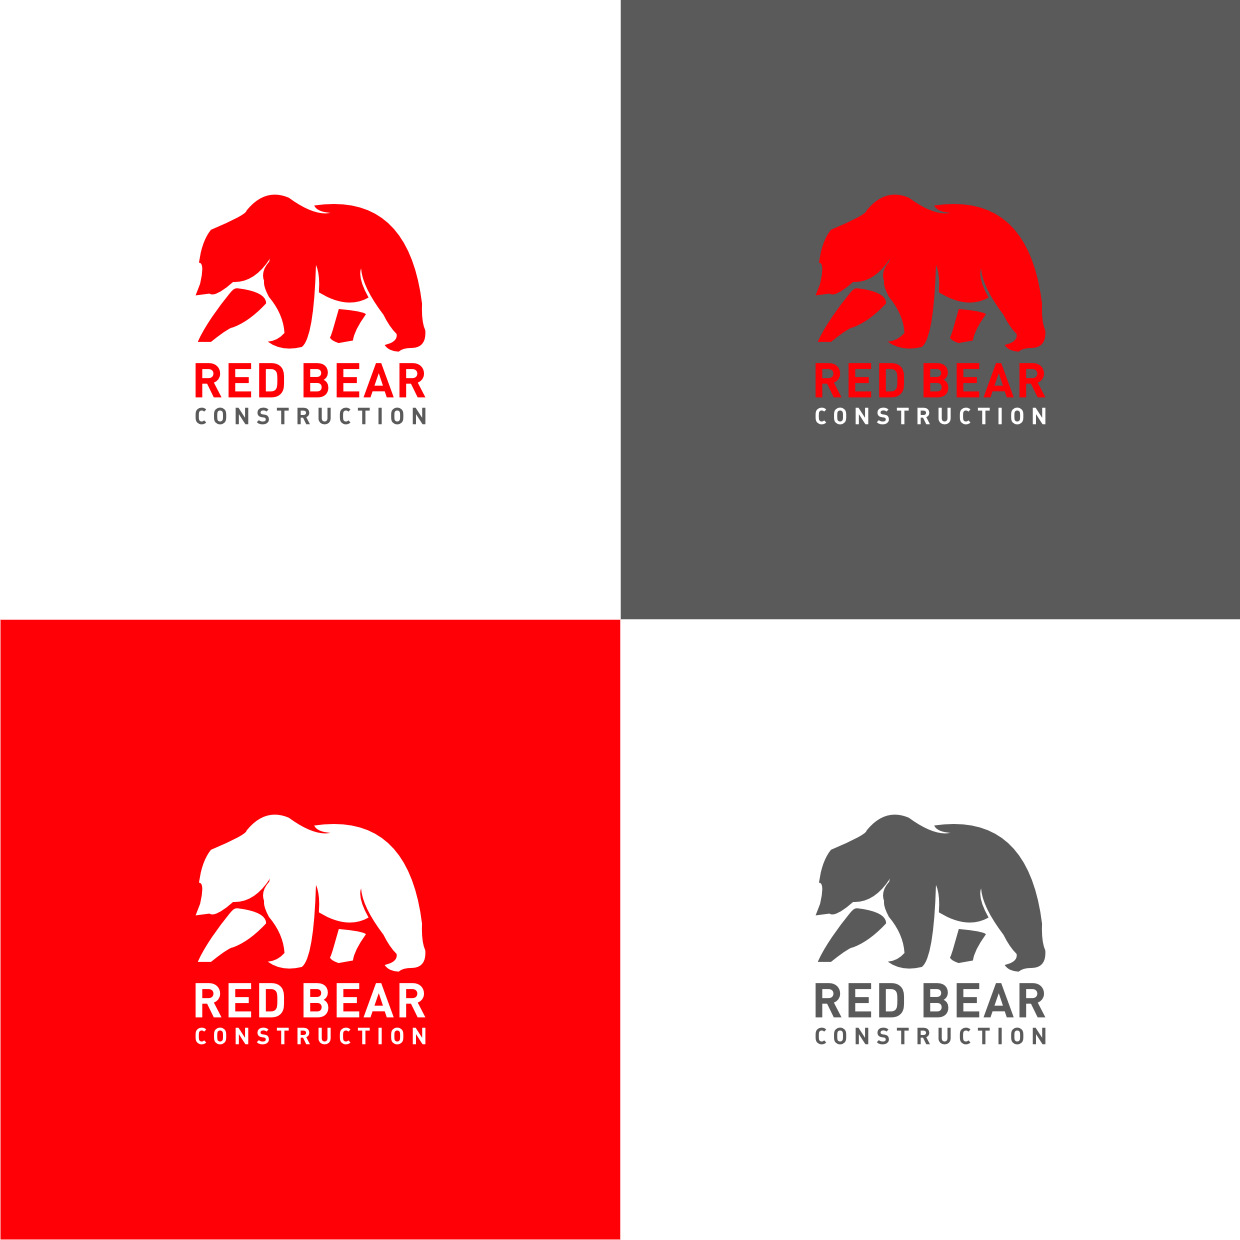 Red Bear Construction